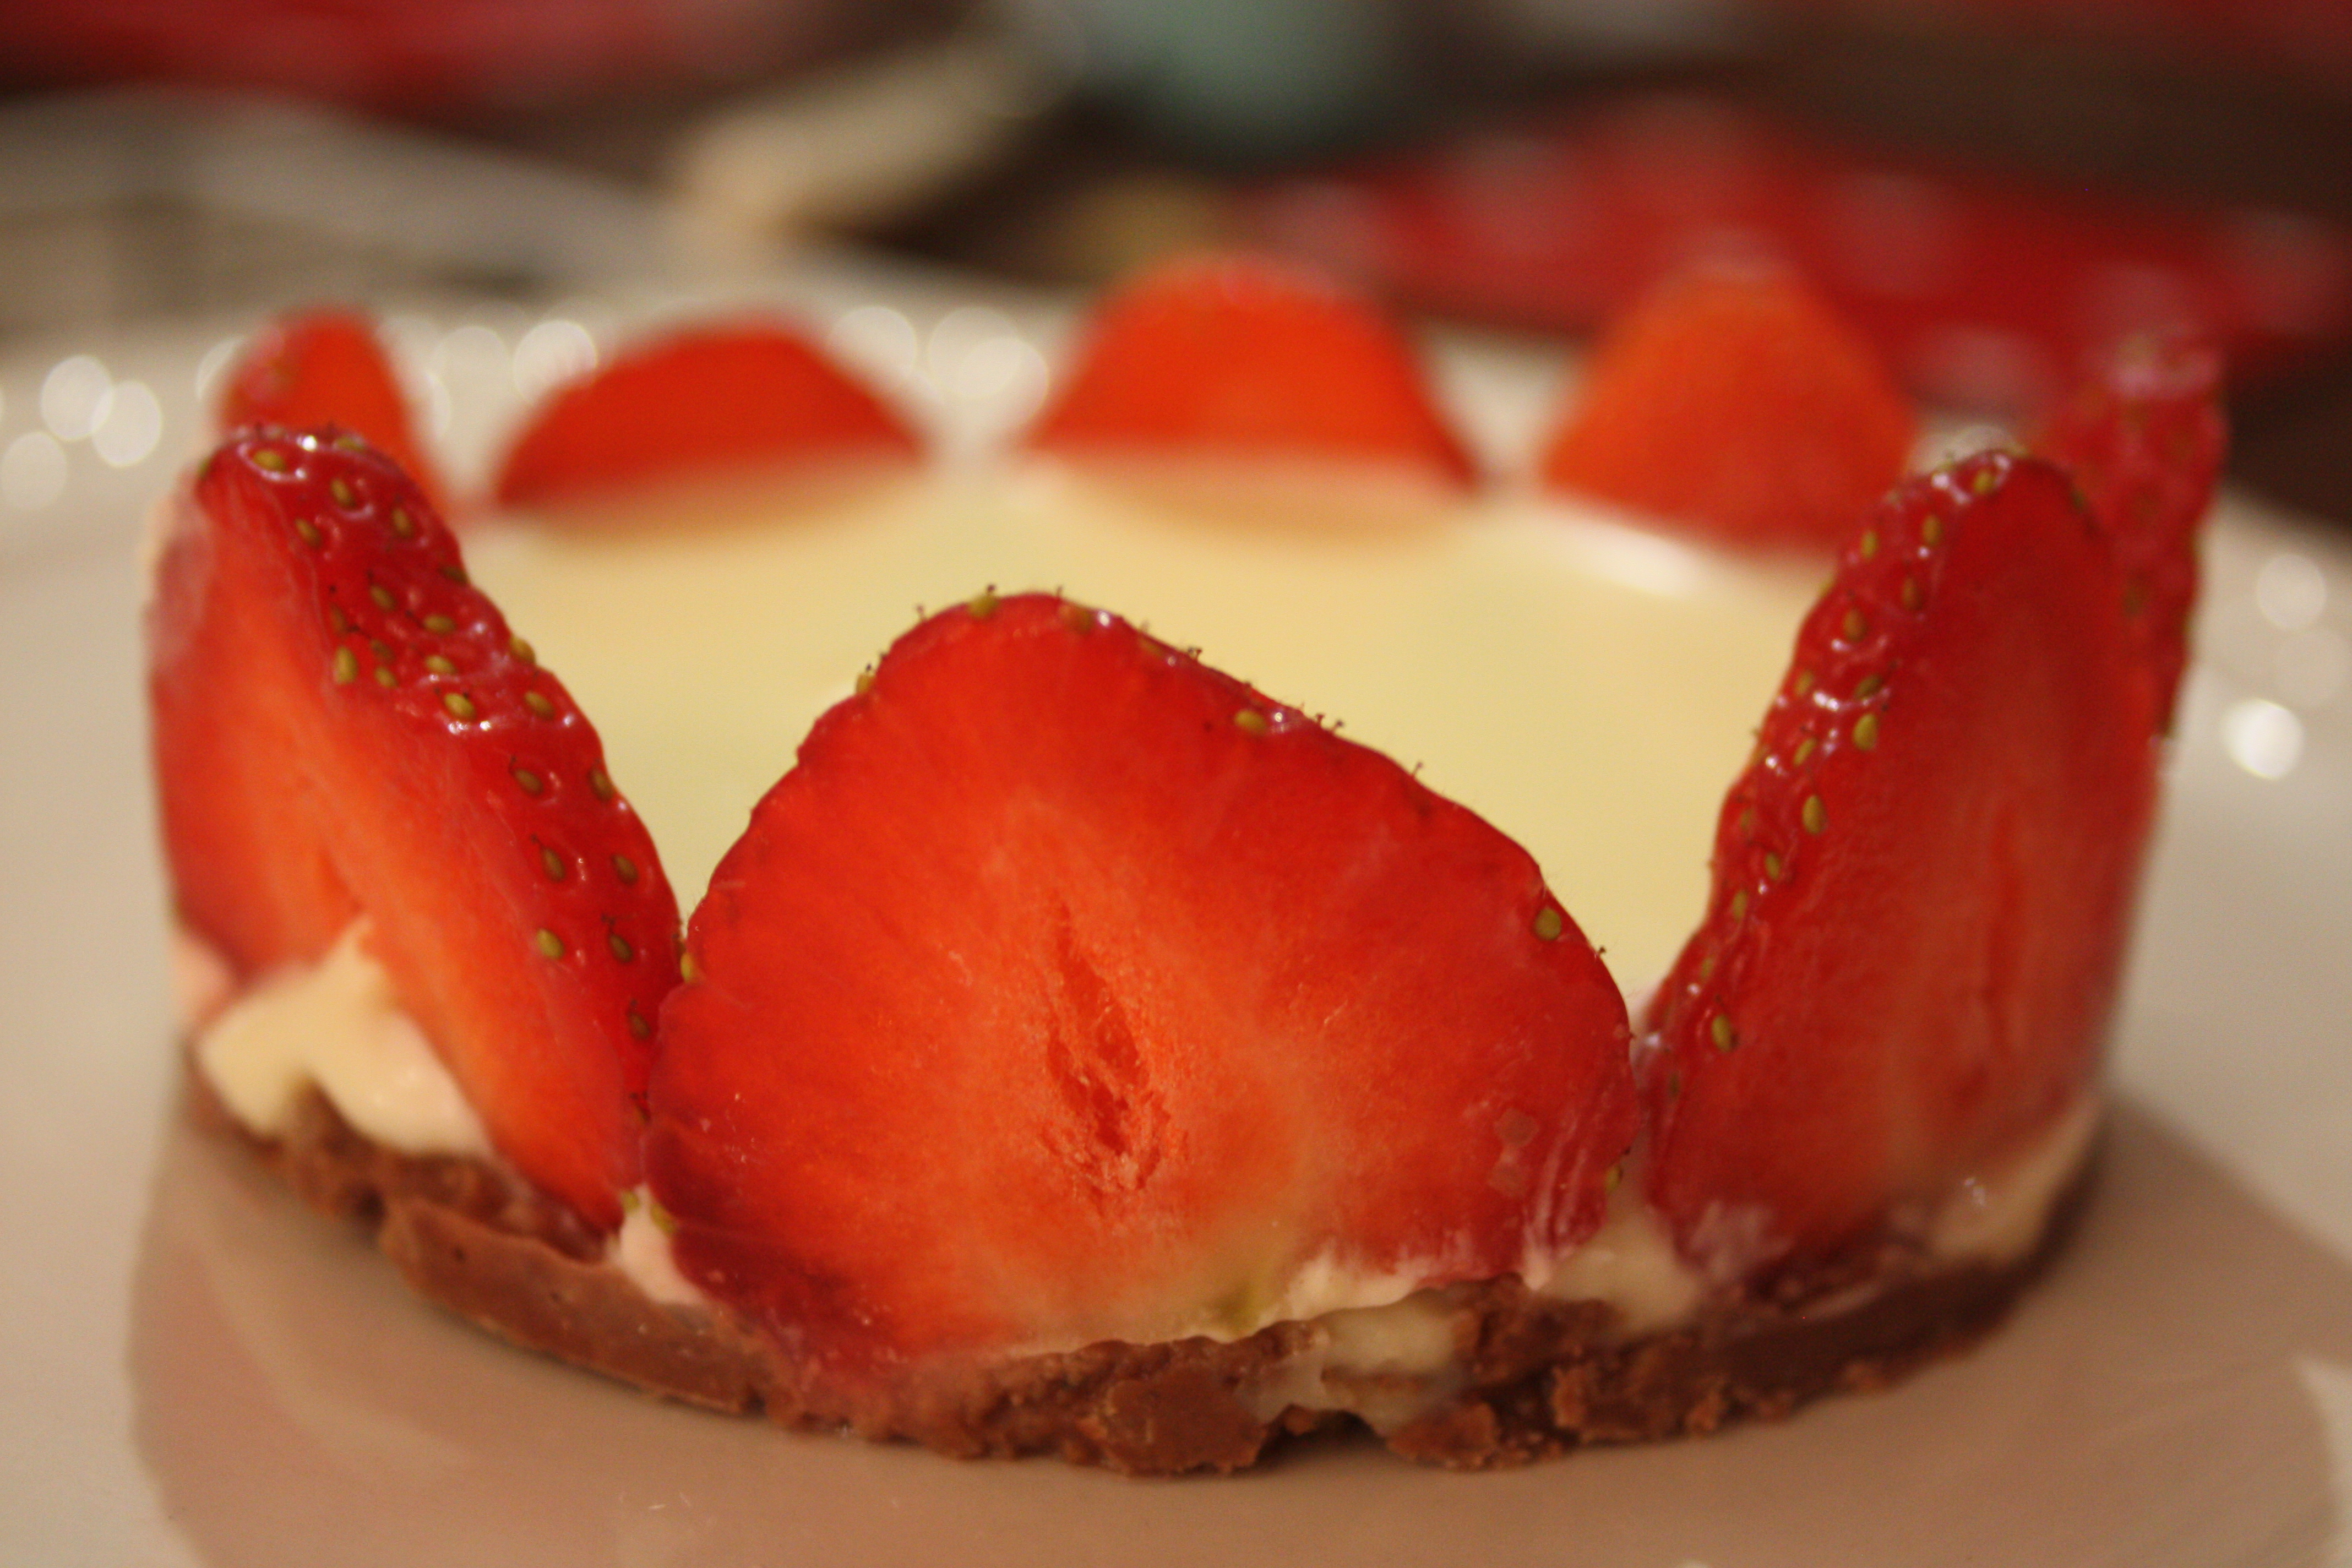 Slumber party pudd: white chocolate and strawberry mousse